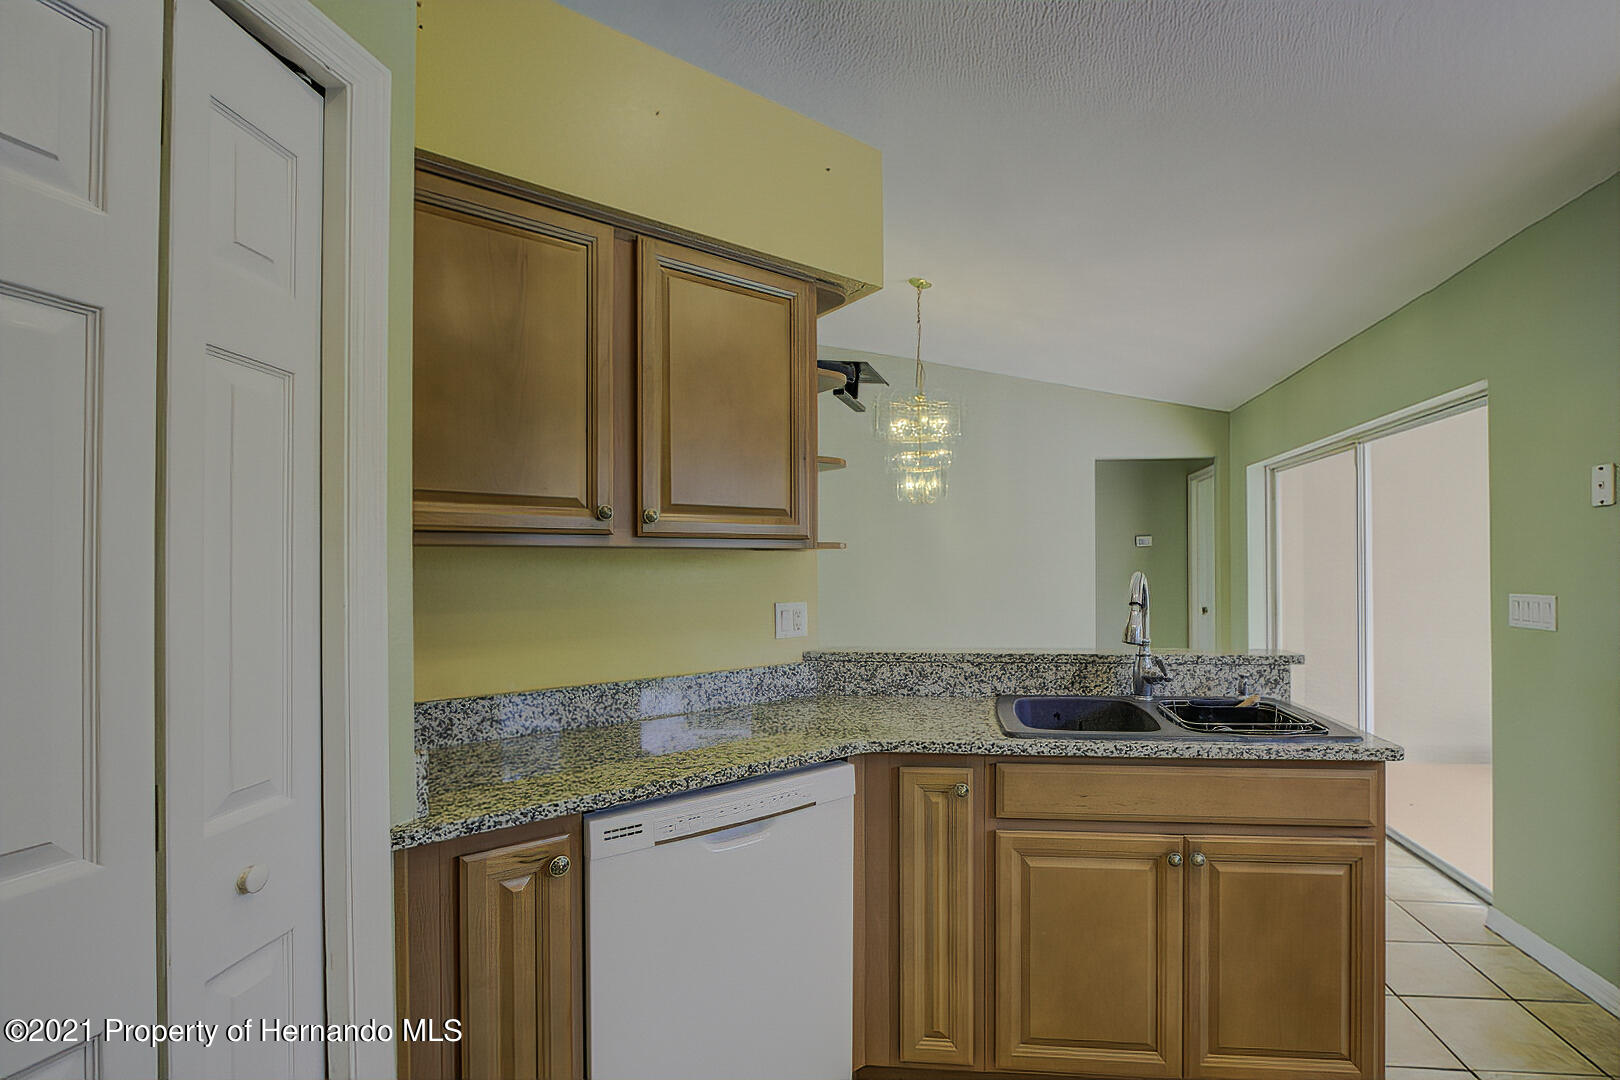 Image 9 of 27 For 12257 Genter Drive